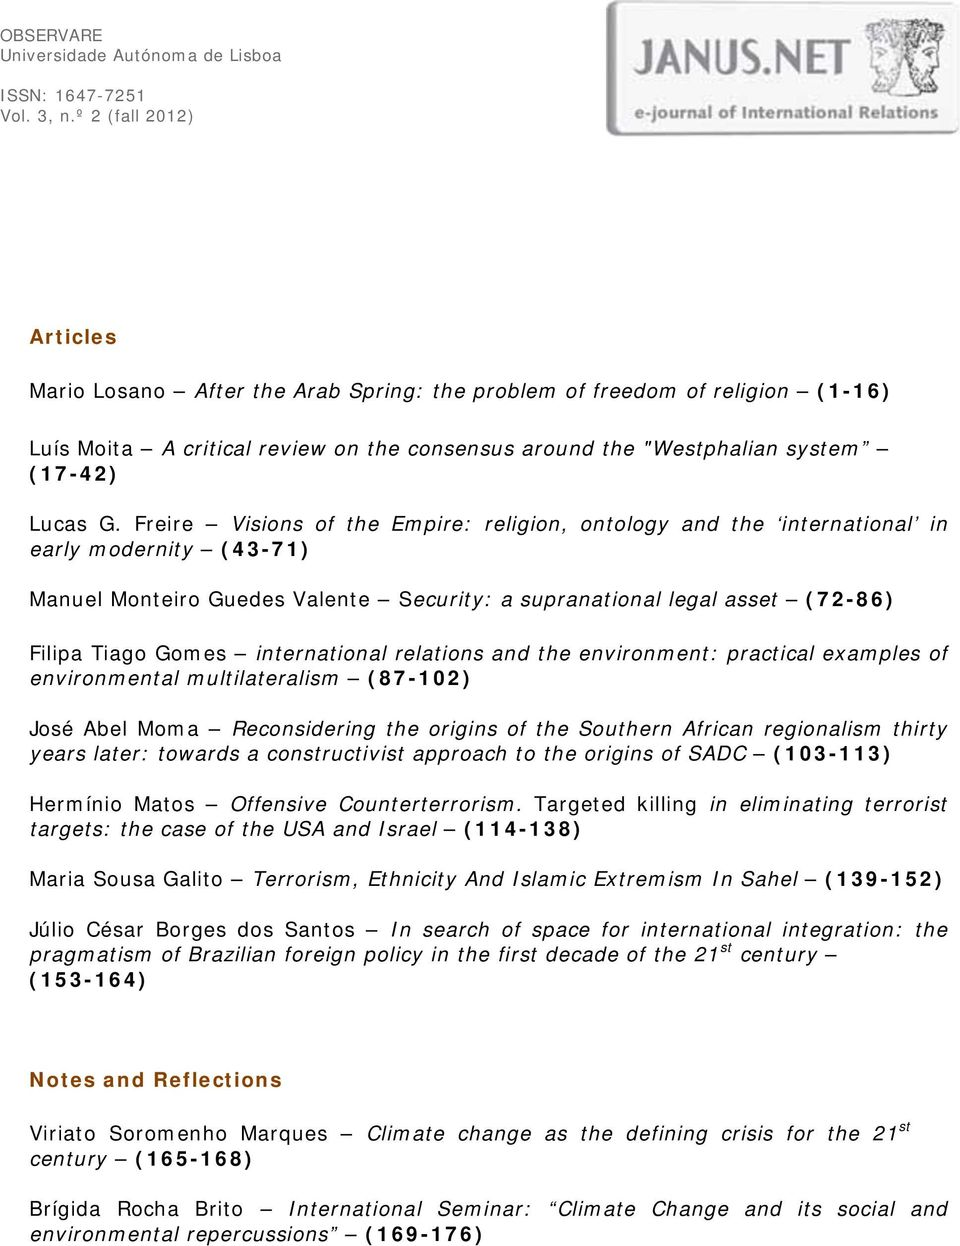 Freire Visions of the Empire: religion, ontology and the international in early modernity (43-71) Manuel Monteiro Guedes Valente Security: a supranational legal asset (72-86) Filipa Tiago Gomes